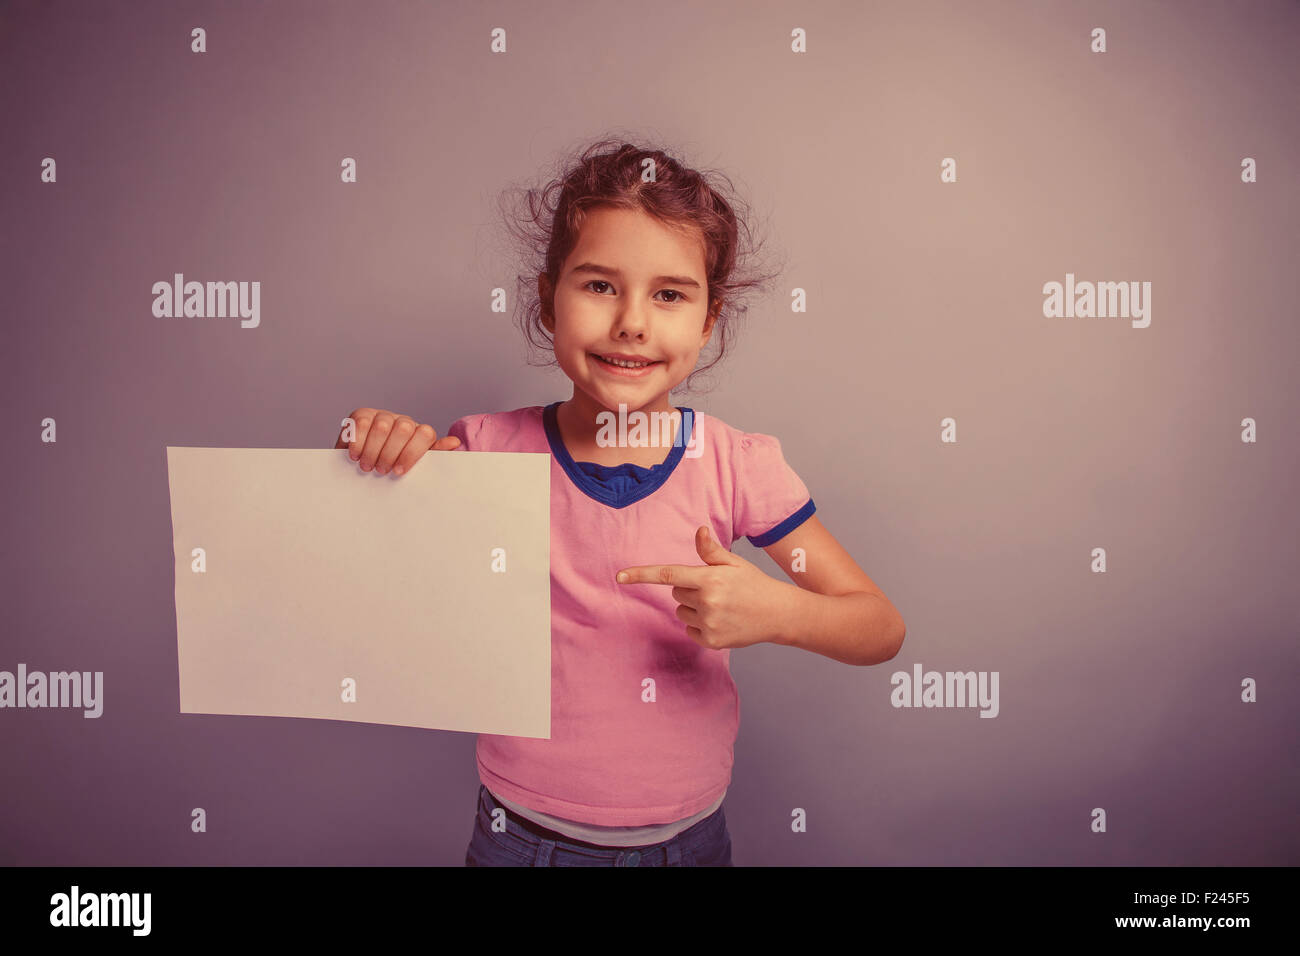 girl child 6  years of  European appearance holds a clean sheet - Stock Image